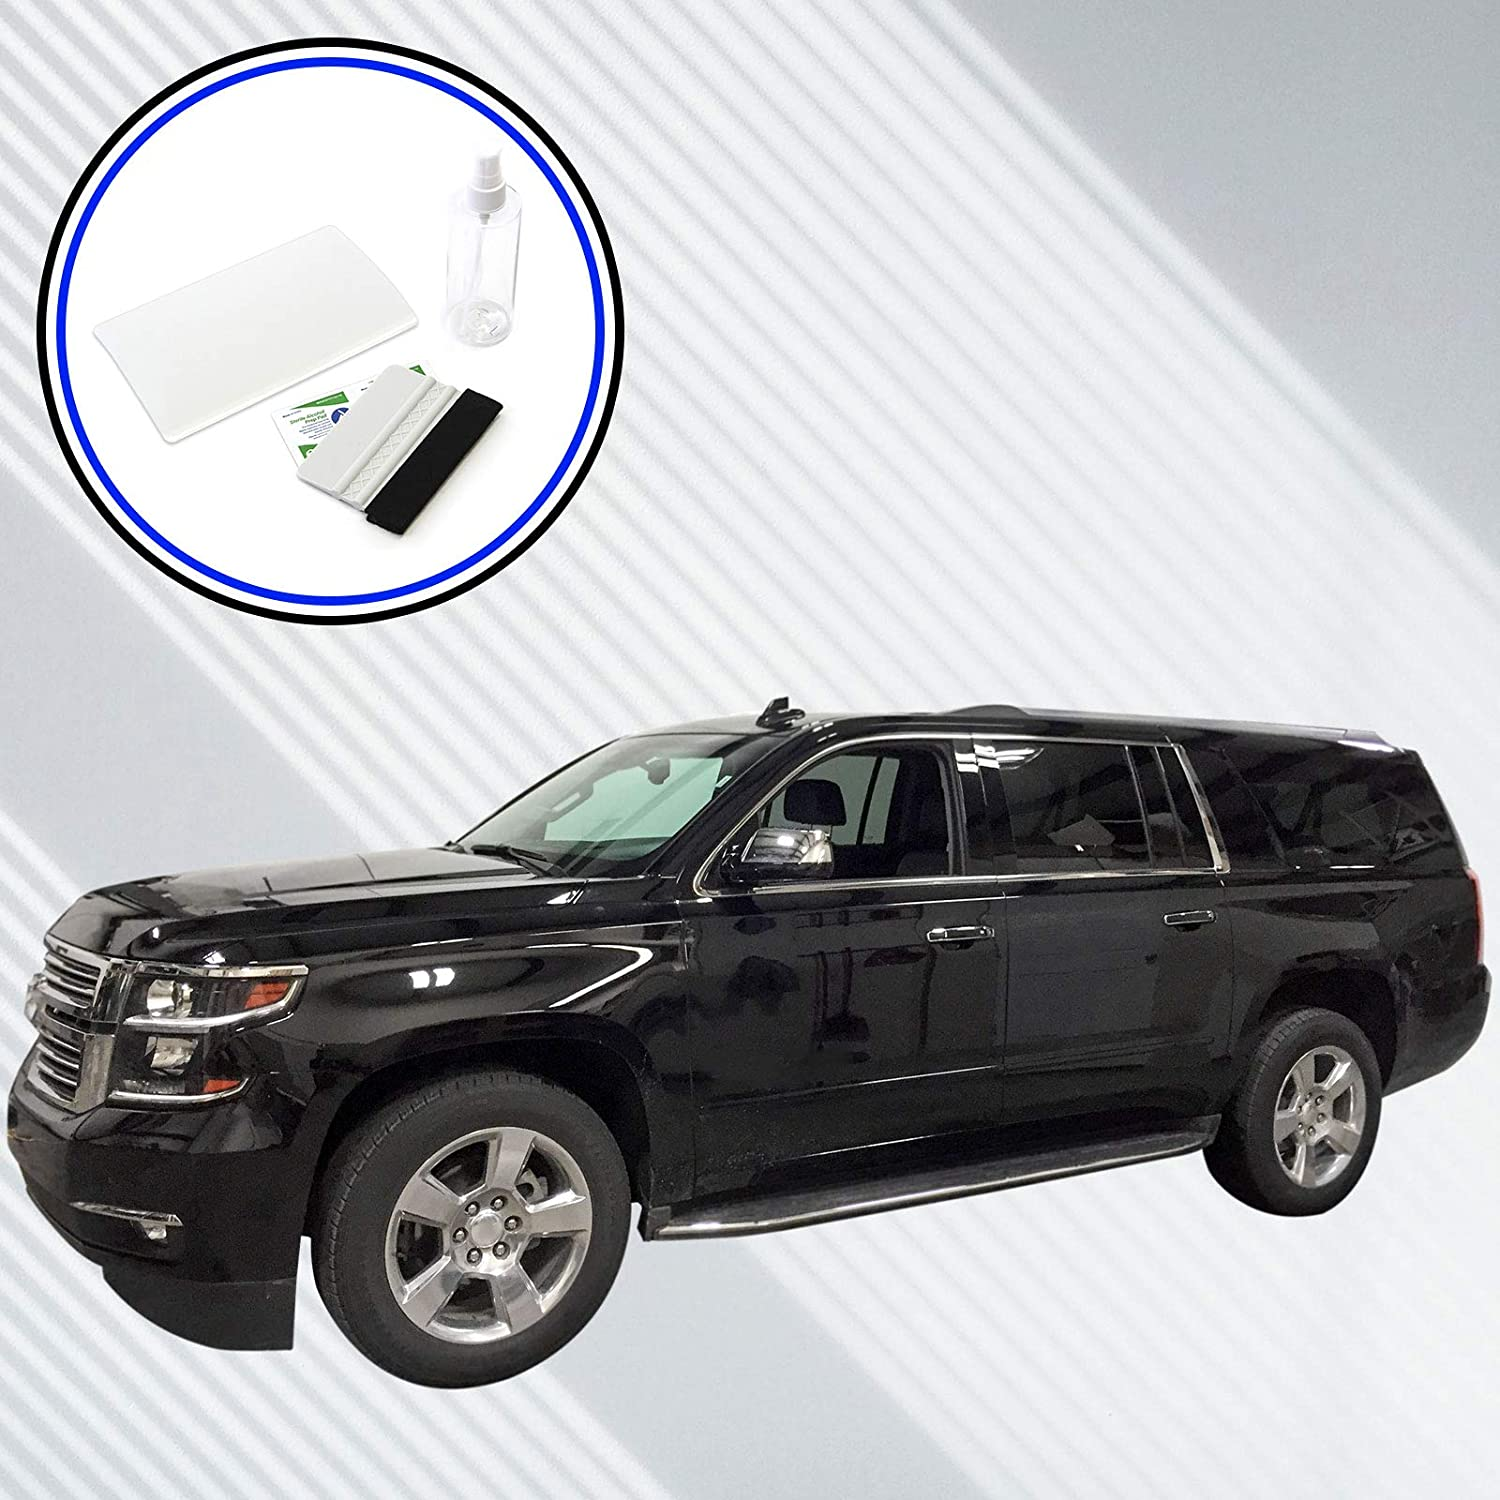 Red Hound Auto Touch Display Protector 2015-2019 Compatible with Chevy Suburban Tahoe MyLink GMC Yukon XL Intellilink Screen Saver Custom Fit Invisible High Clarity Minimizes Fingerprinting 8 Inch